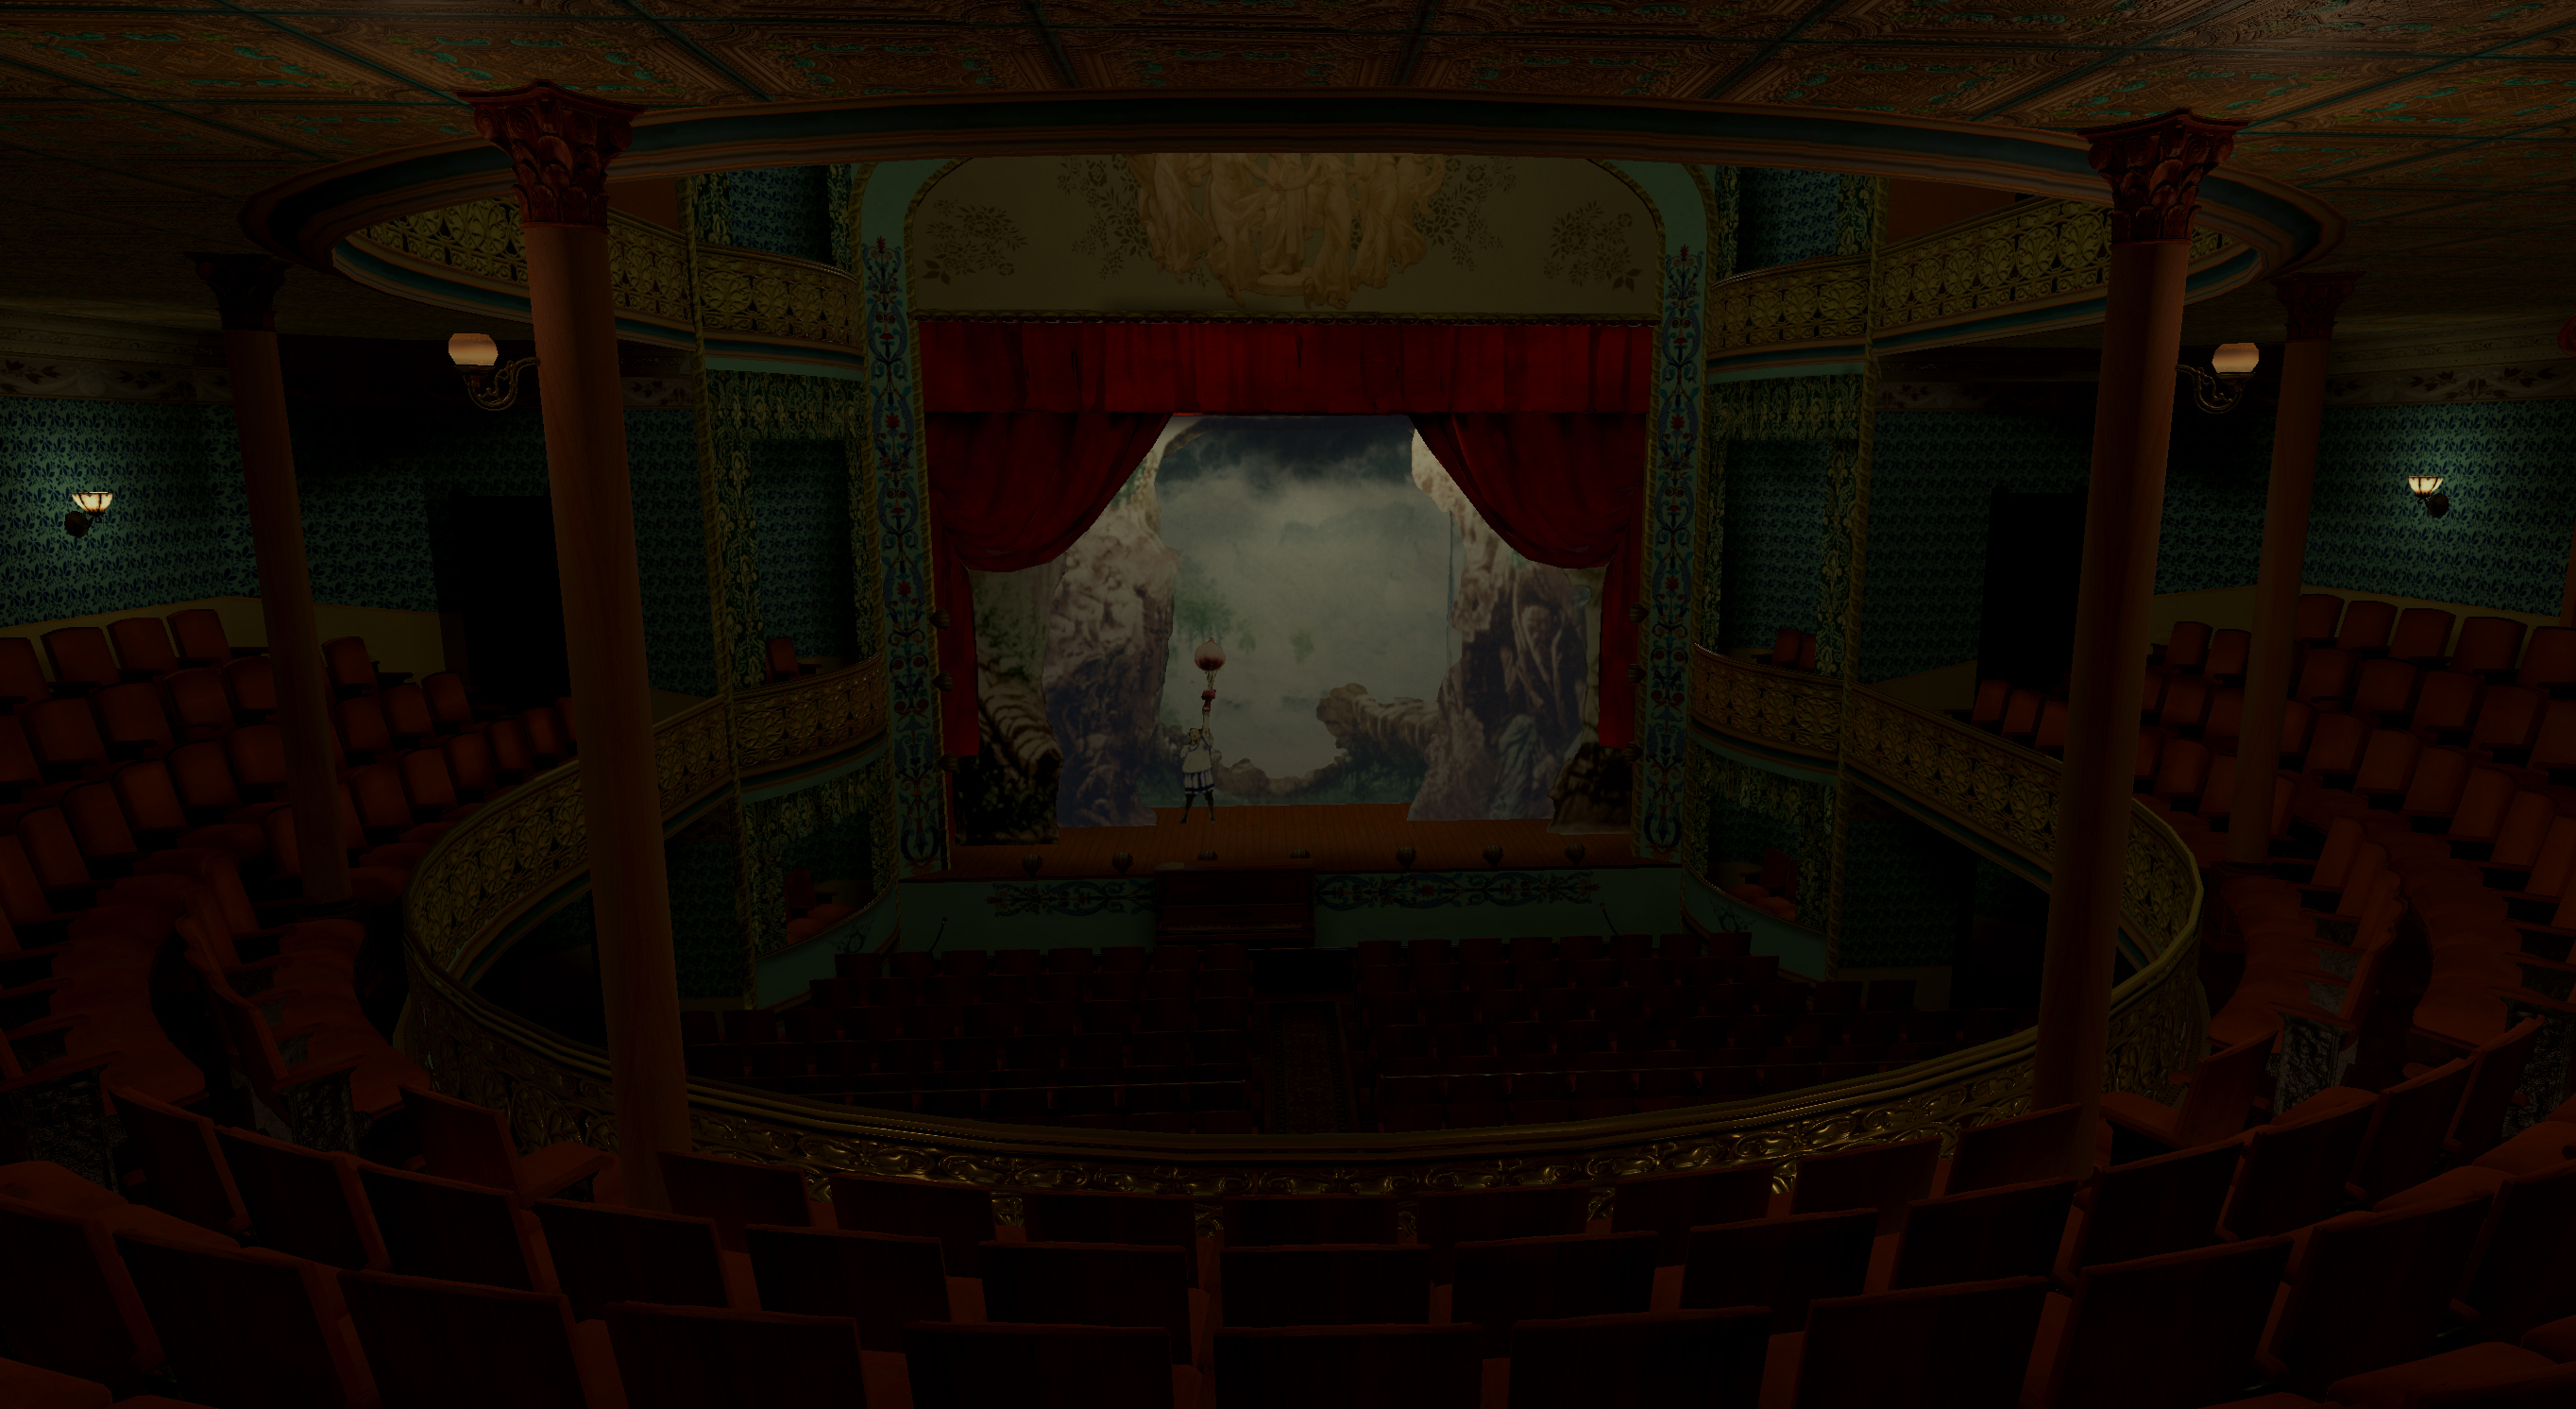 Victoria Theatre 3D Virtual Reality Reconstruction Nearing